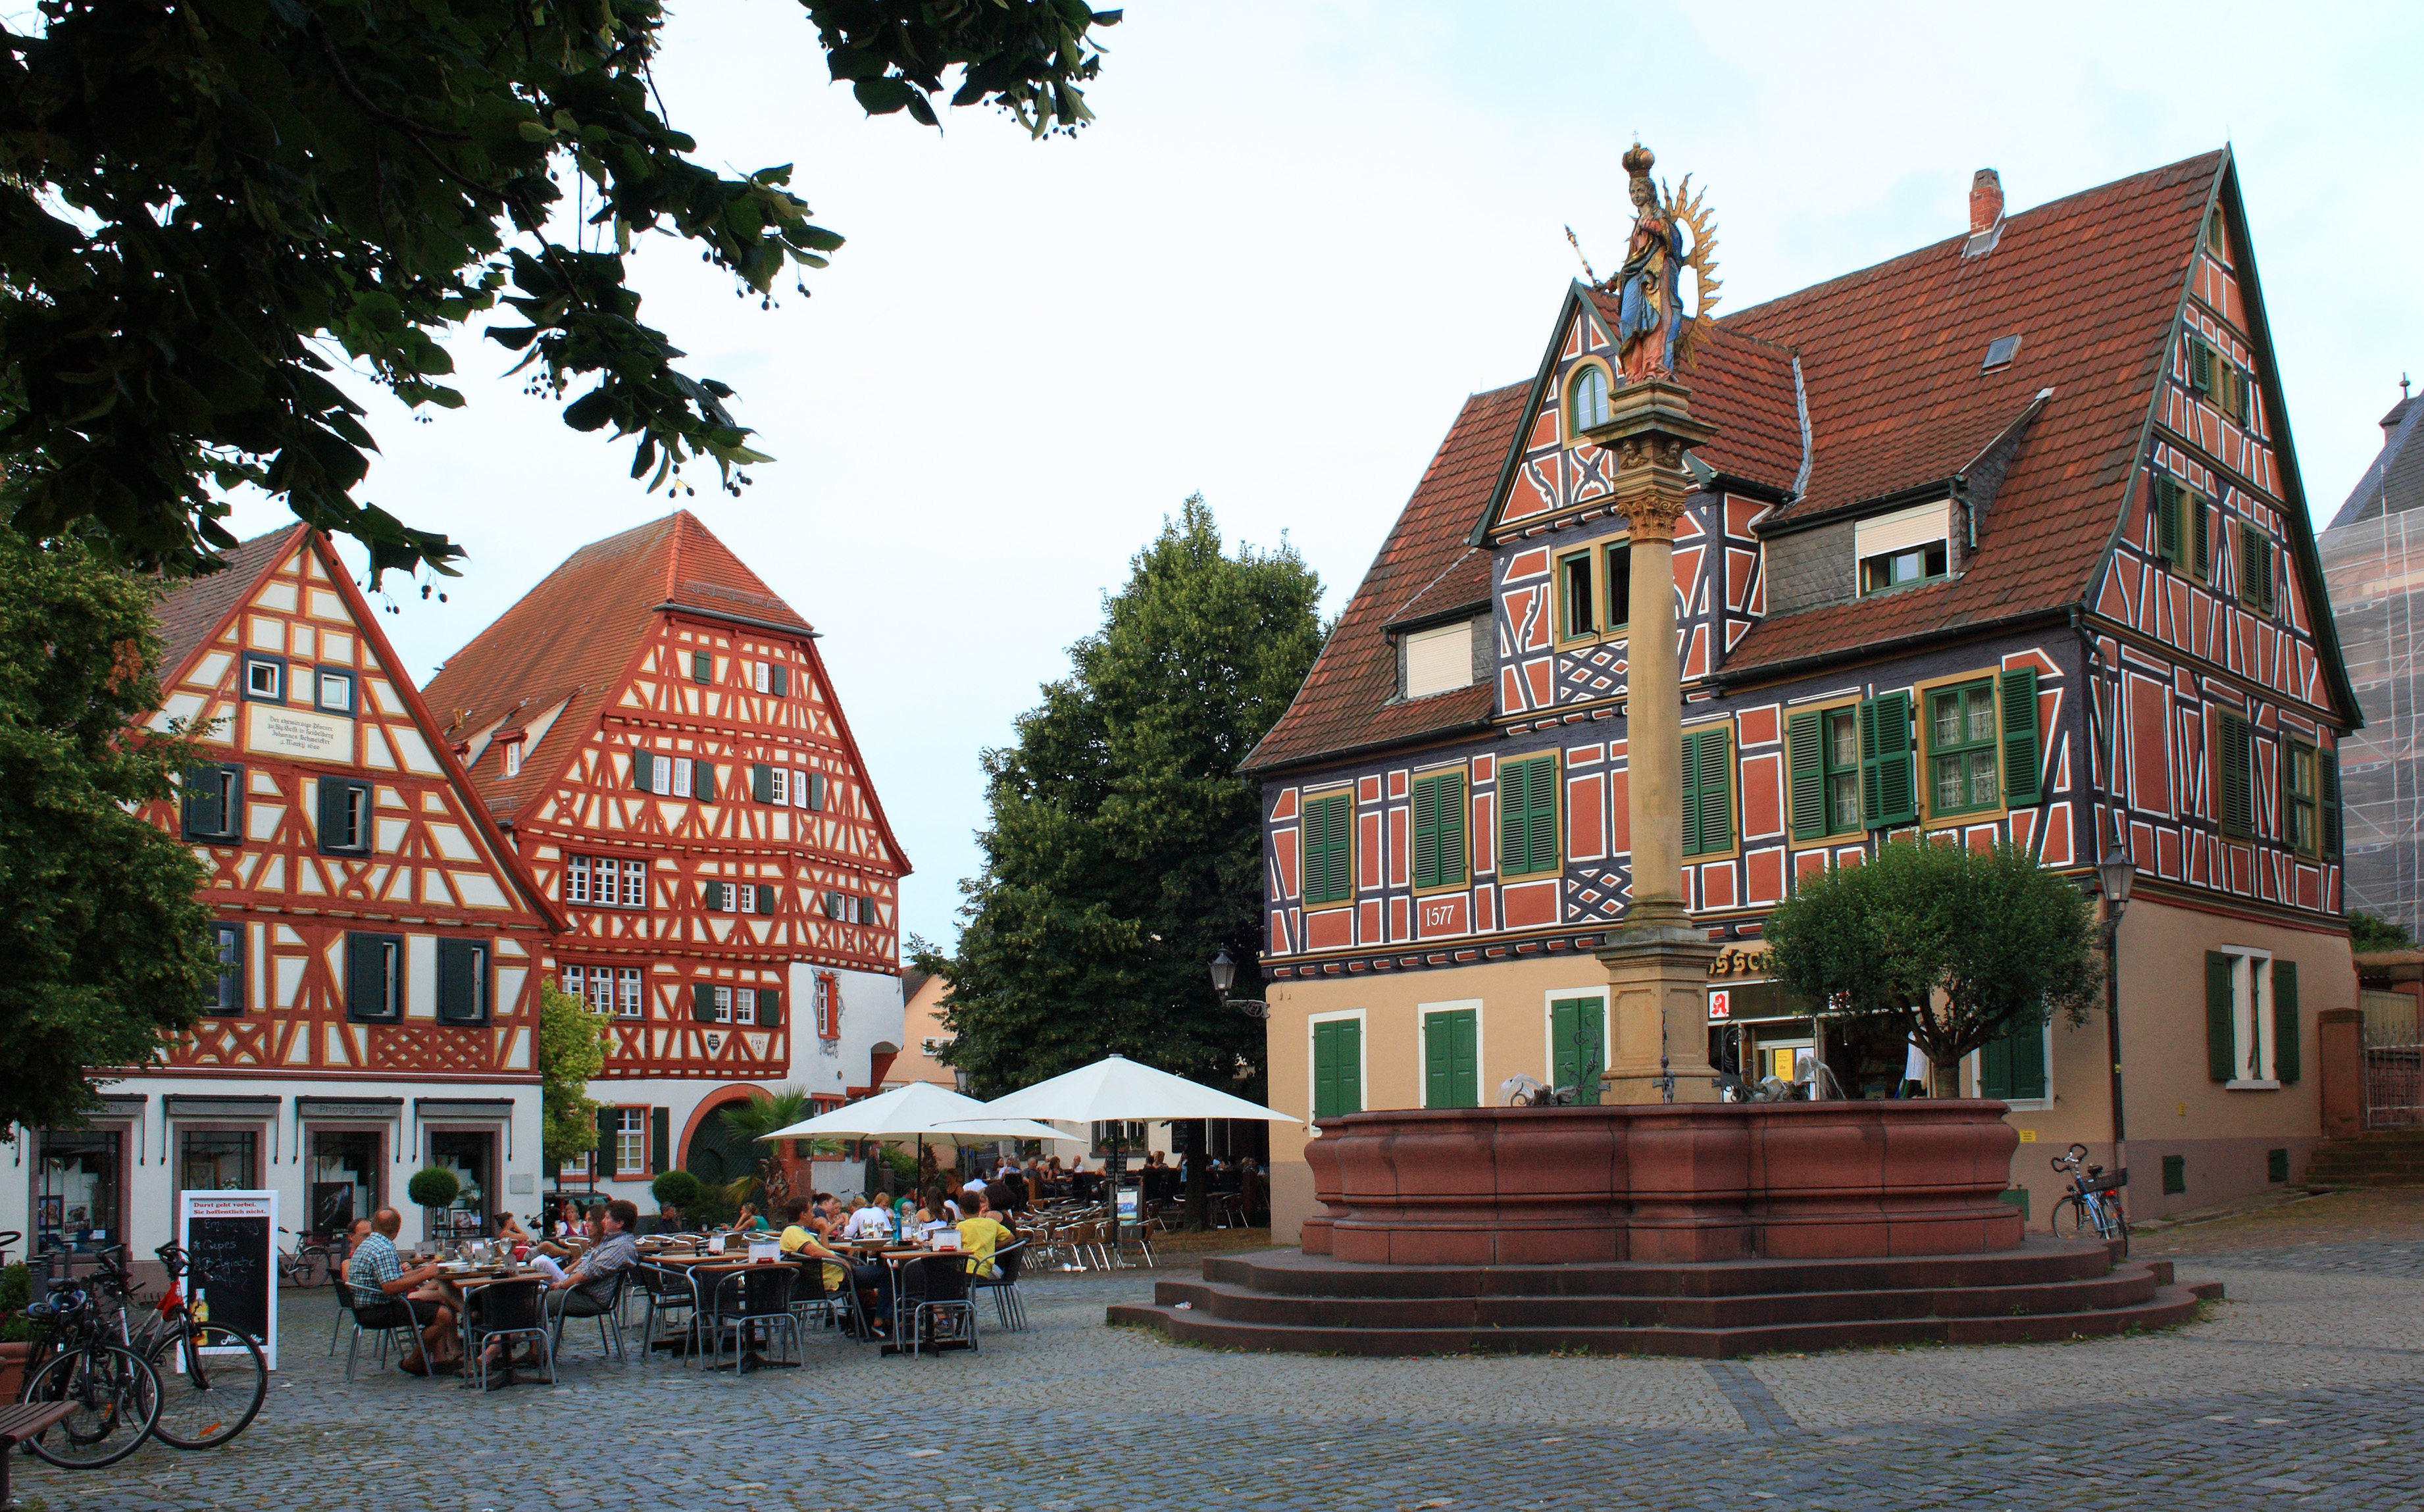 Ladenburg Germany  city photos : Description Ladenburg Marktplatz 20100704